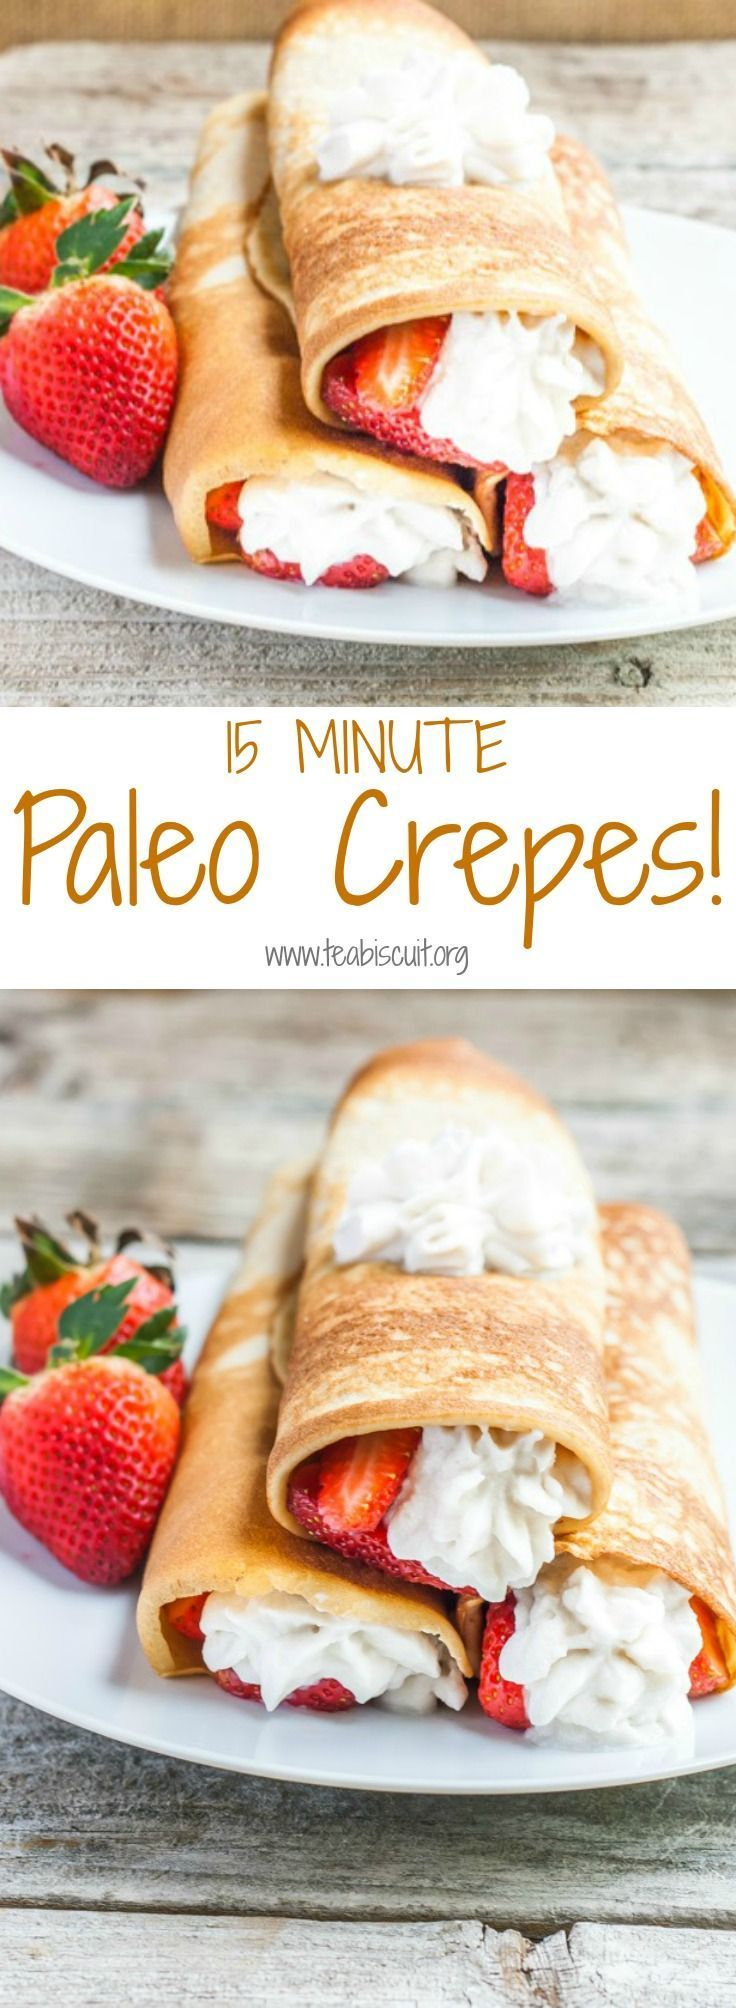 So fast and easy, make Paleo crepes in less than 15 Minutes! A Delicious Paelo Dessert made from scratch. Optional Coconut whipped cream recipe included!| Paleo | Grain Free | Gluten Free http://www.teabiscuit.org/paleo-crepes-with-strawberries/